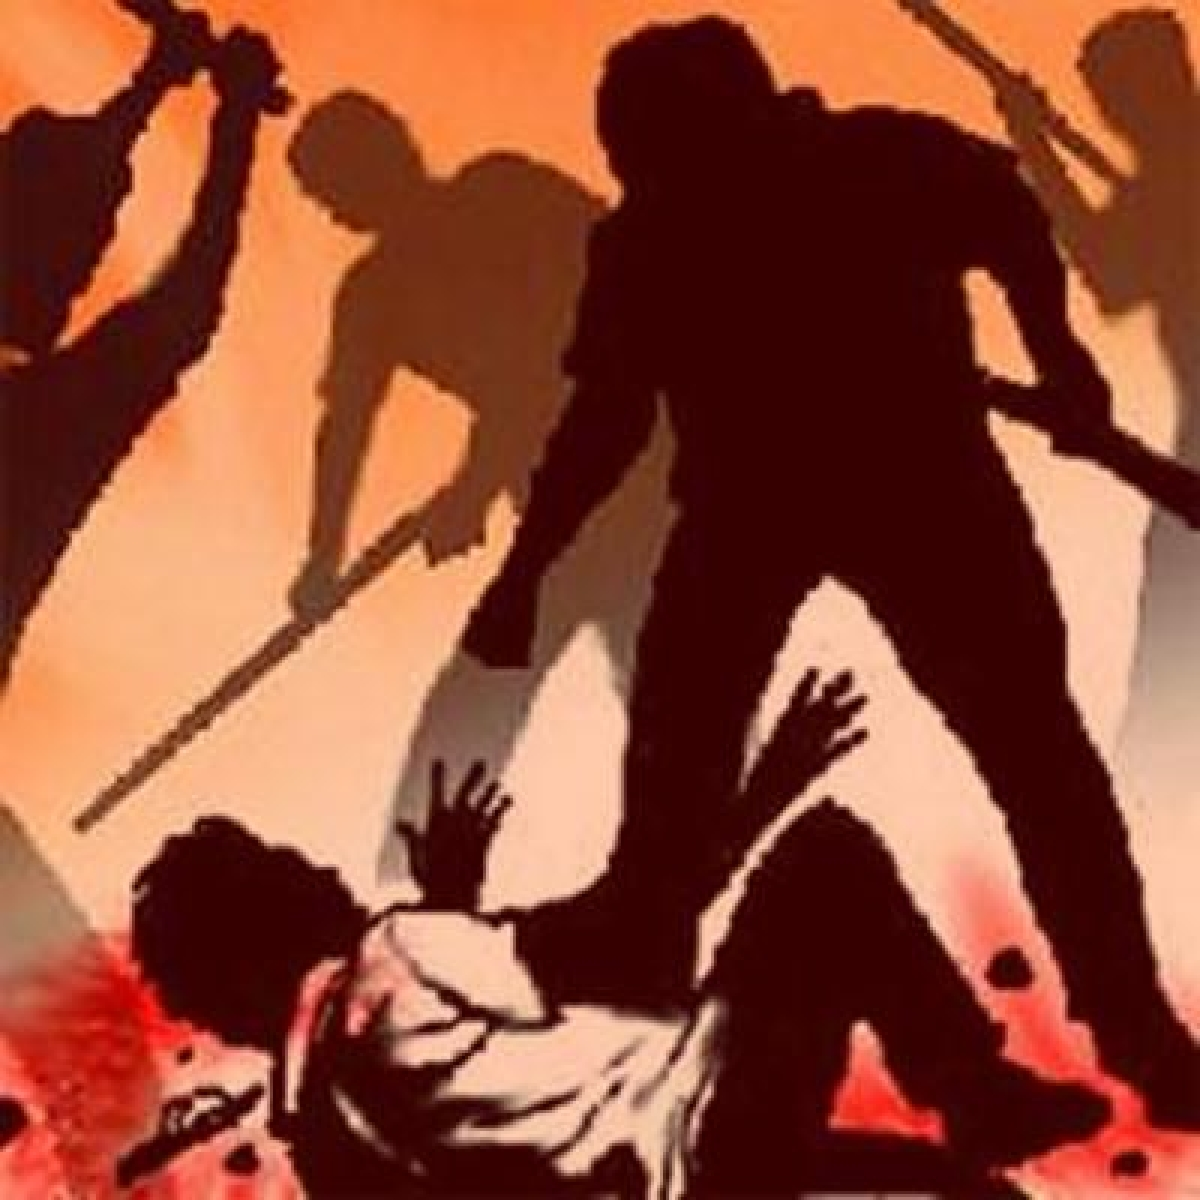 19-year-old youth stabbed to death